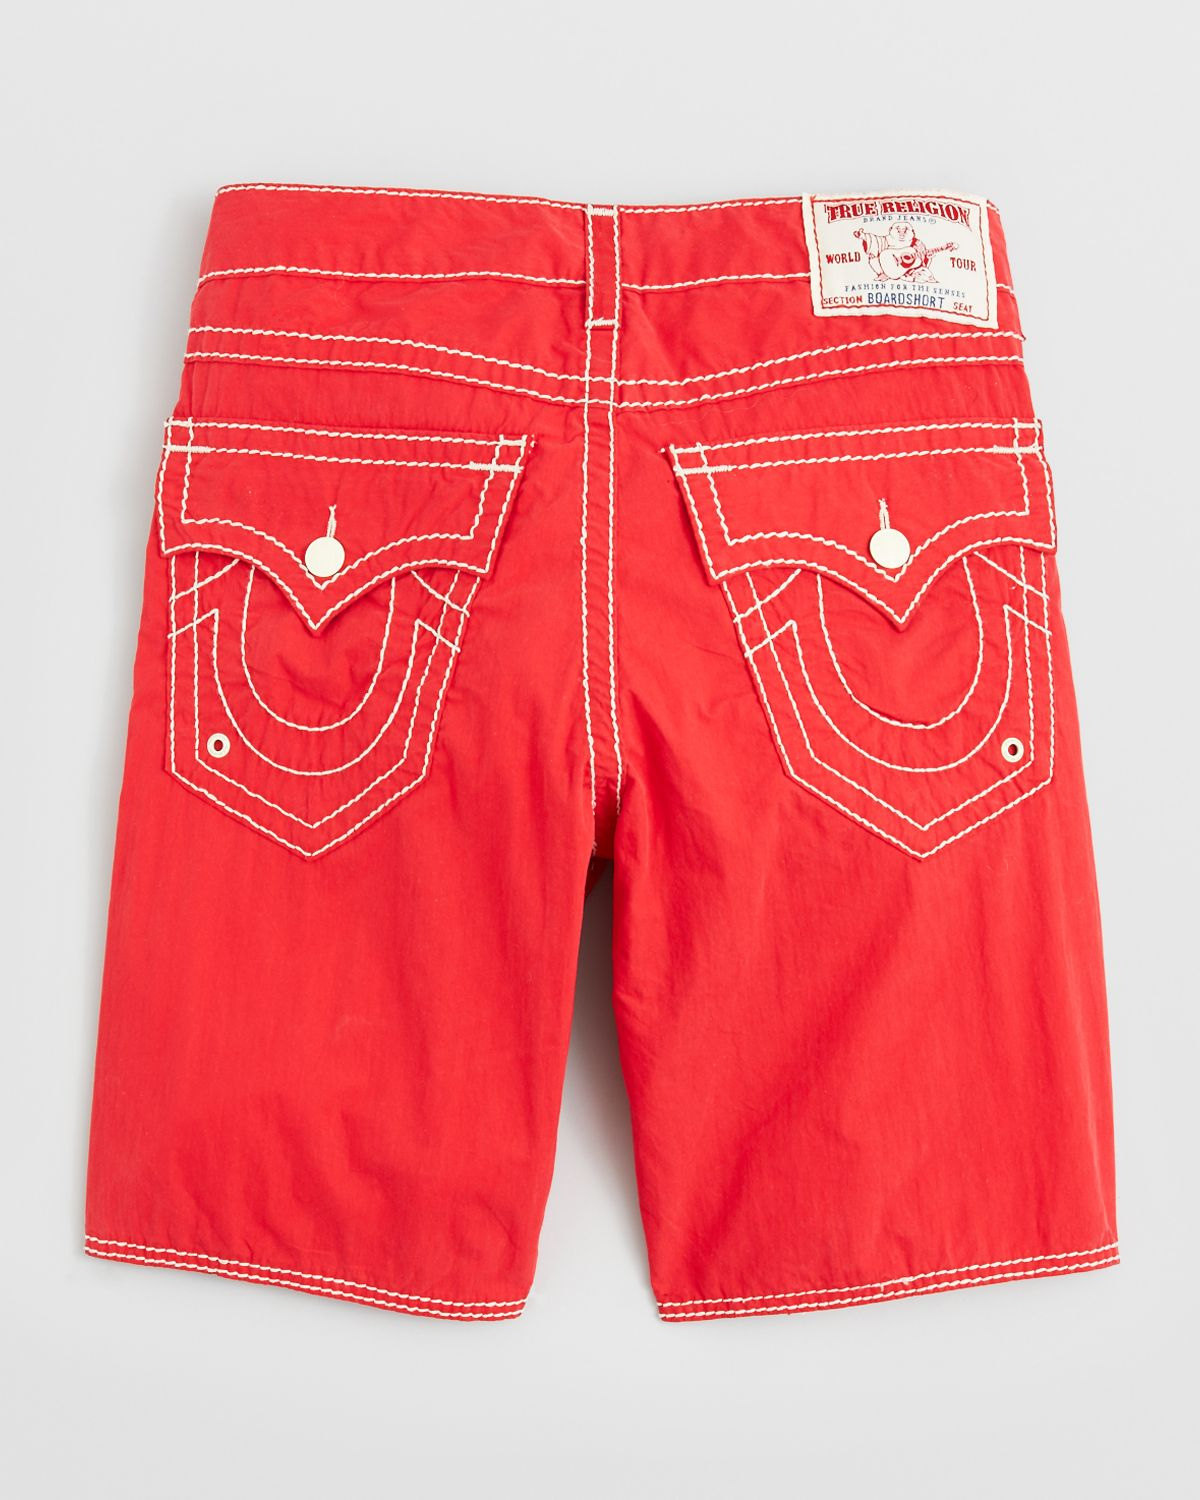 Discount Top Quality Cheap Price For Sale Swim Short With Pinapple Print - Red Religion Nicekicks Online Really Cheap Price Discounts tE84haynKr